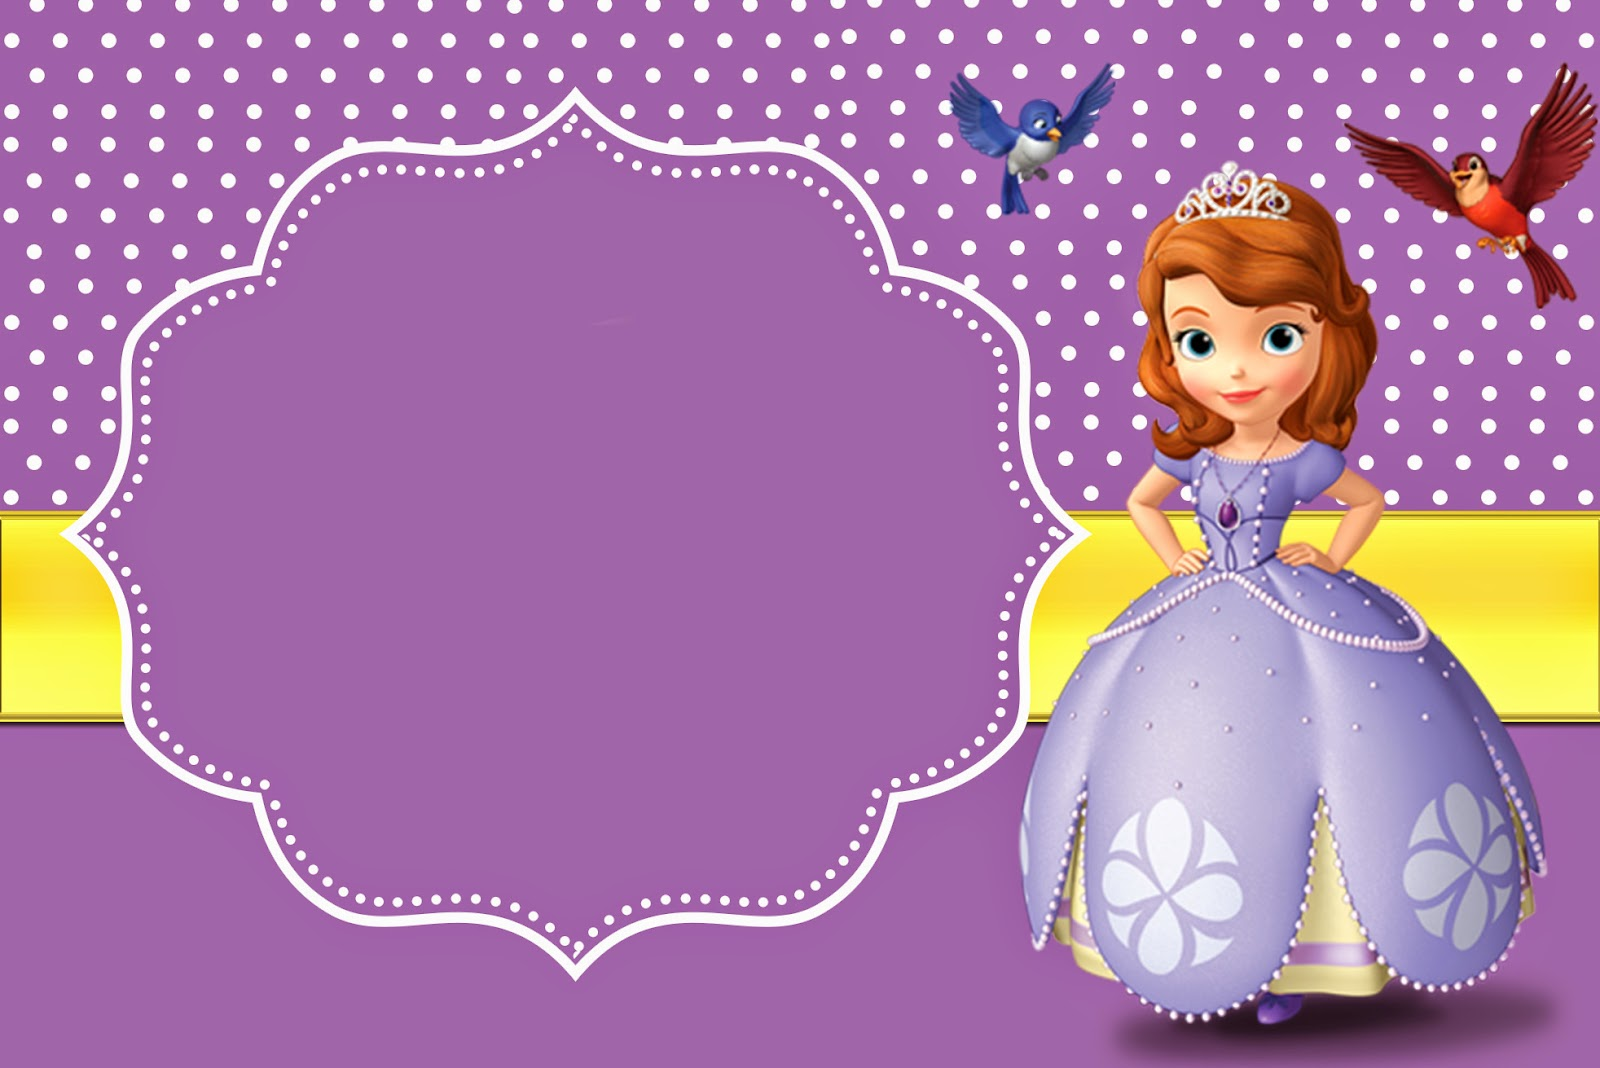 Sofia The First Birthday Party Invitations is the best ideas you have to choose for invitation example